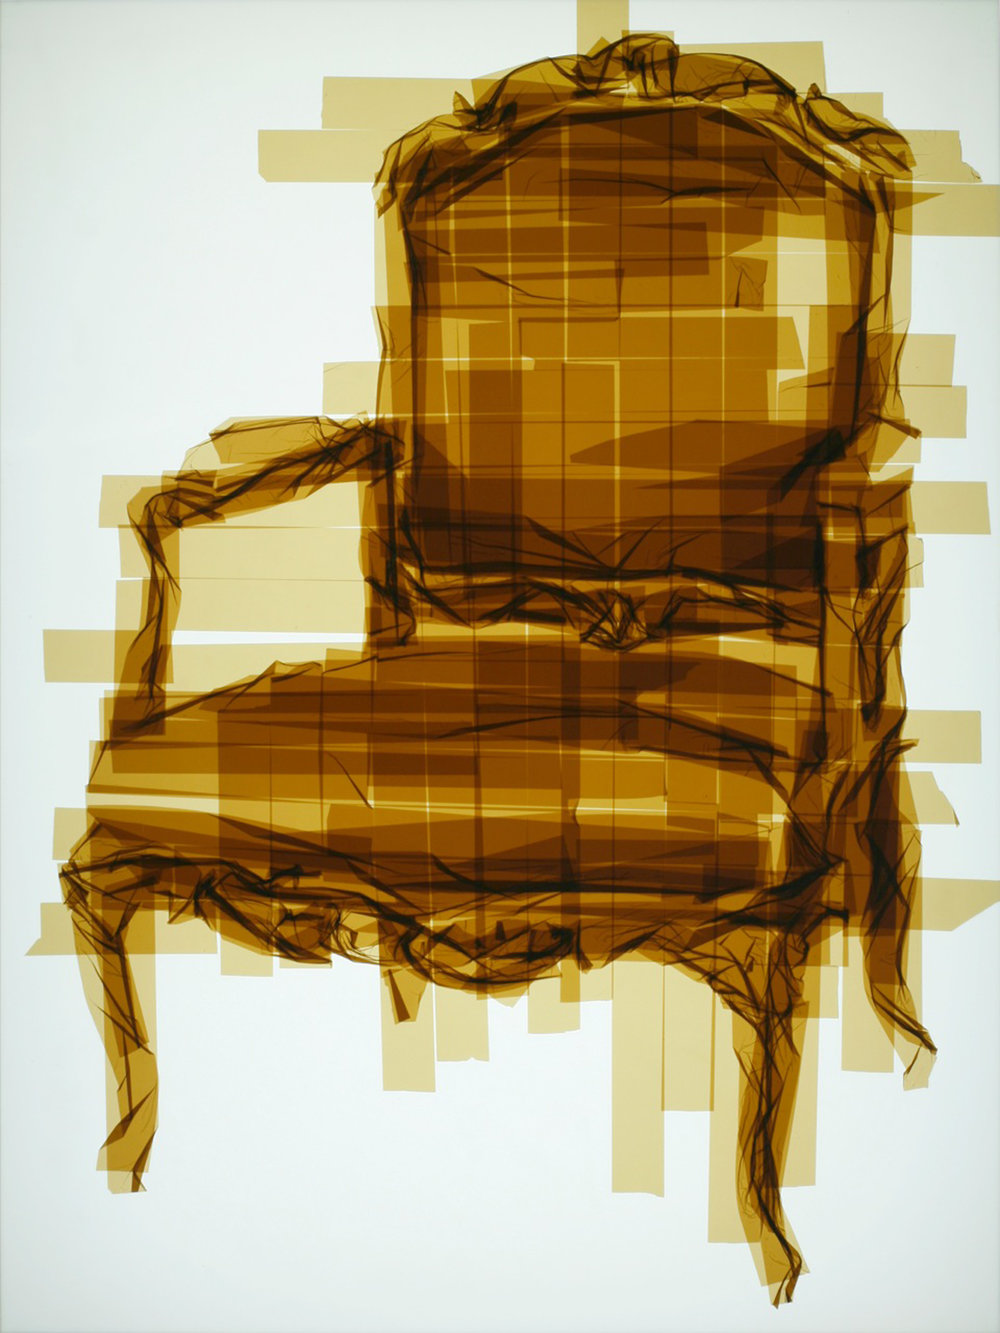 Chair 14, 49 x 37 x 4.5 inches / 124.5 x 94 x 11.5 cm, packaging tape on acrylic panels with LED light box, 2015